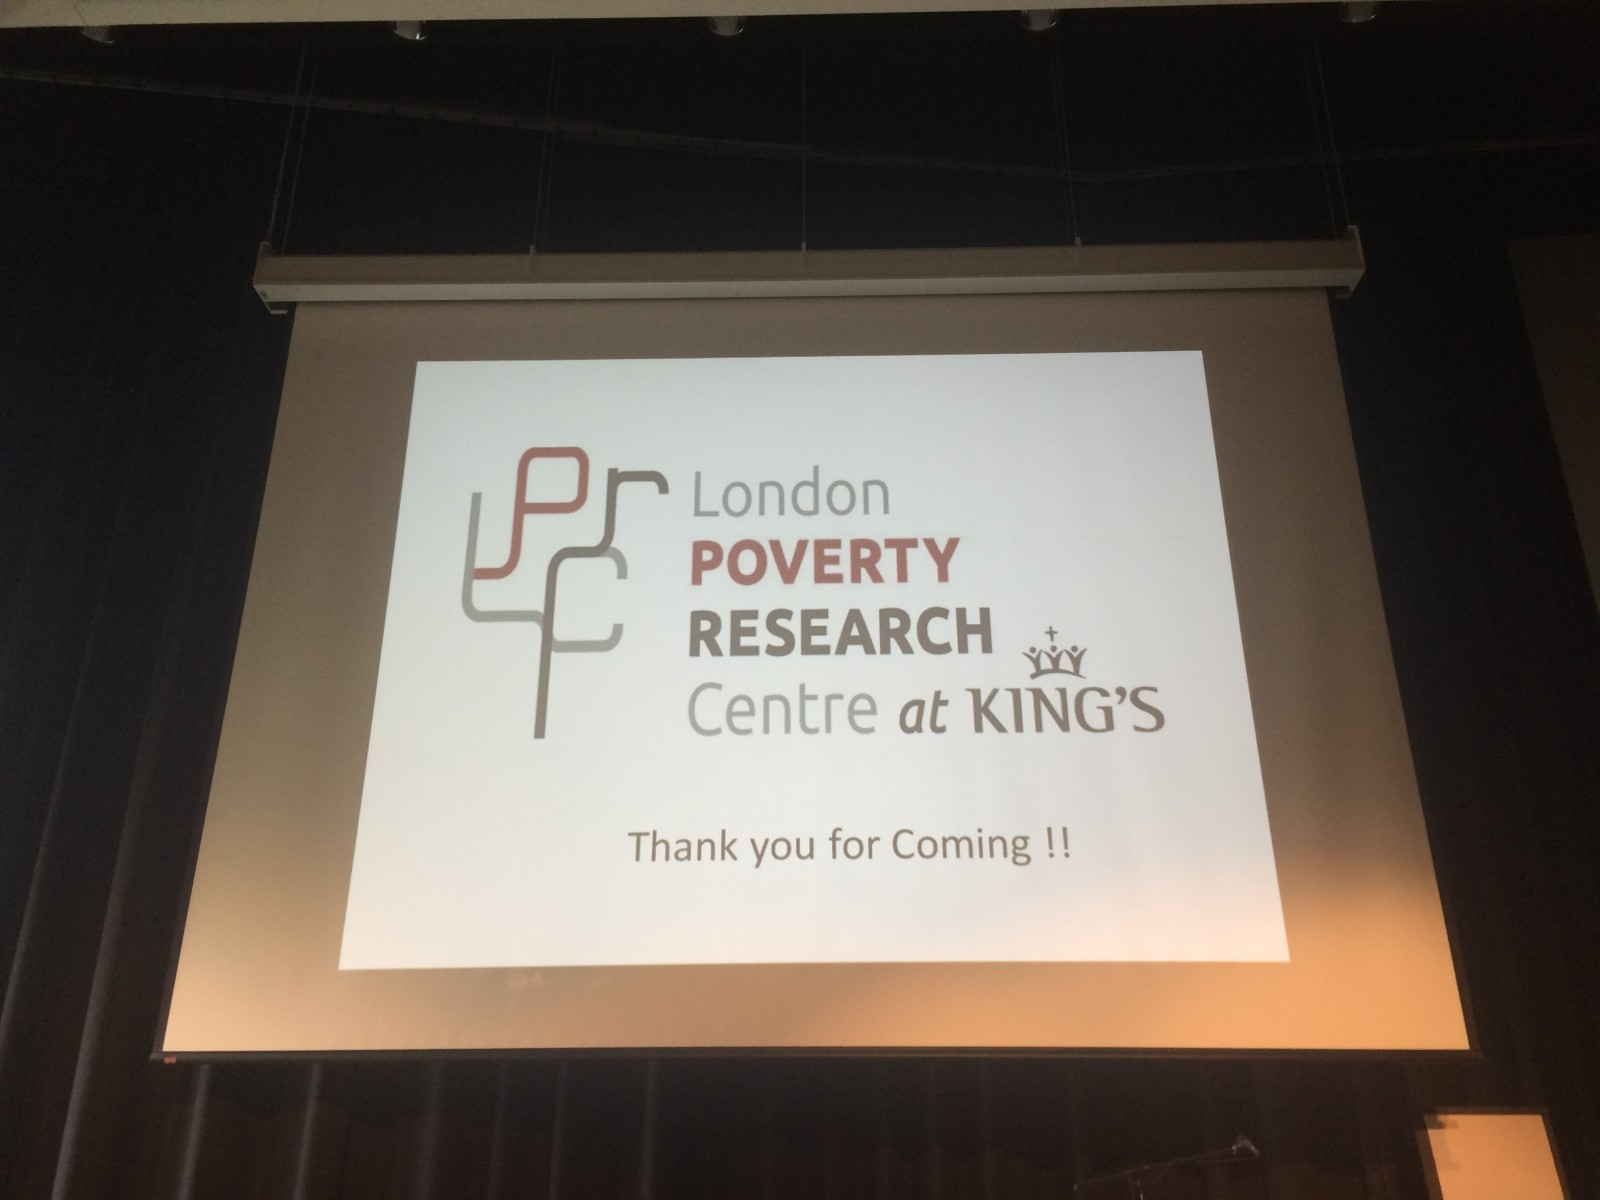 Conference about poverty in London encourages public to inform themselves.